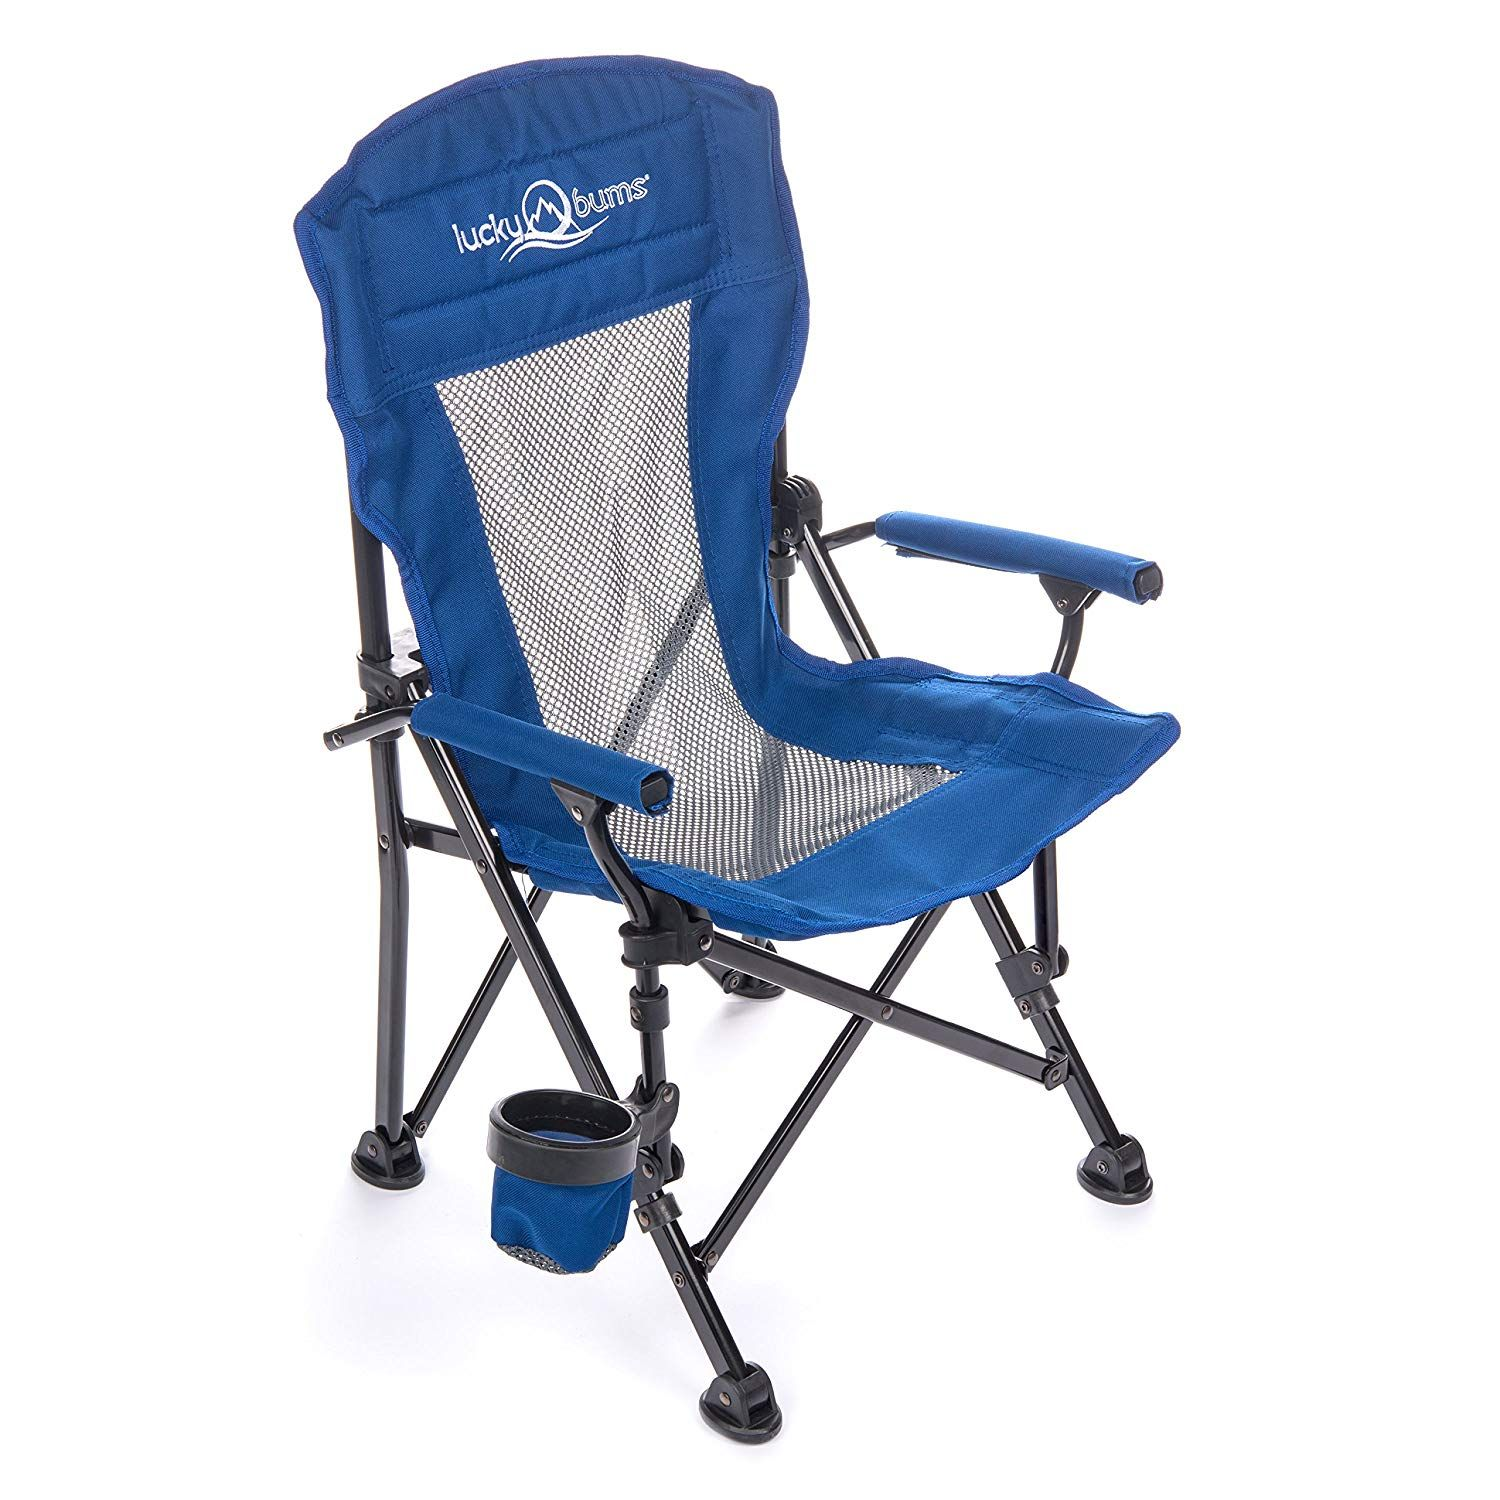 Lucky Bums Youth Folding Arm Chair with Cup Holder ** See